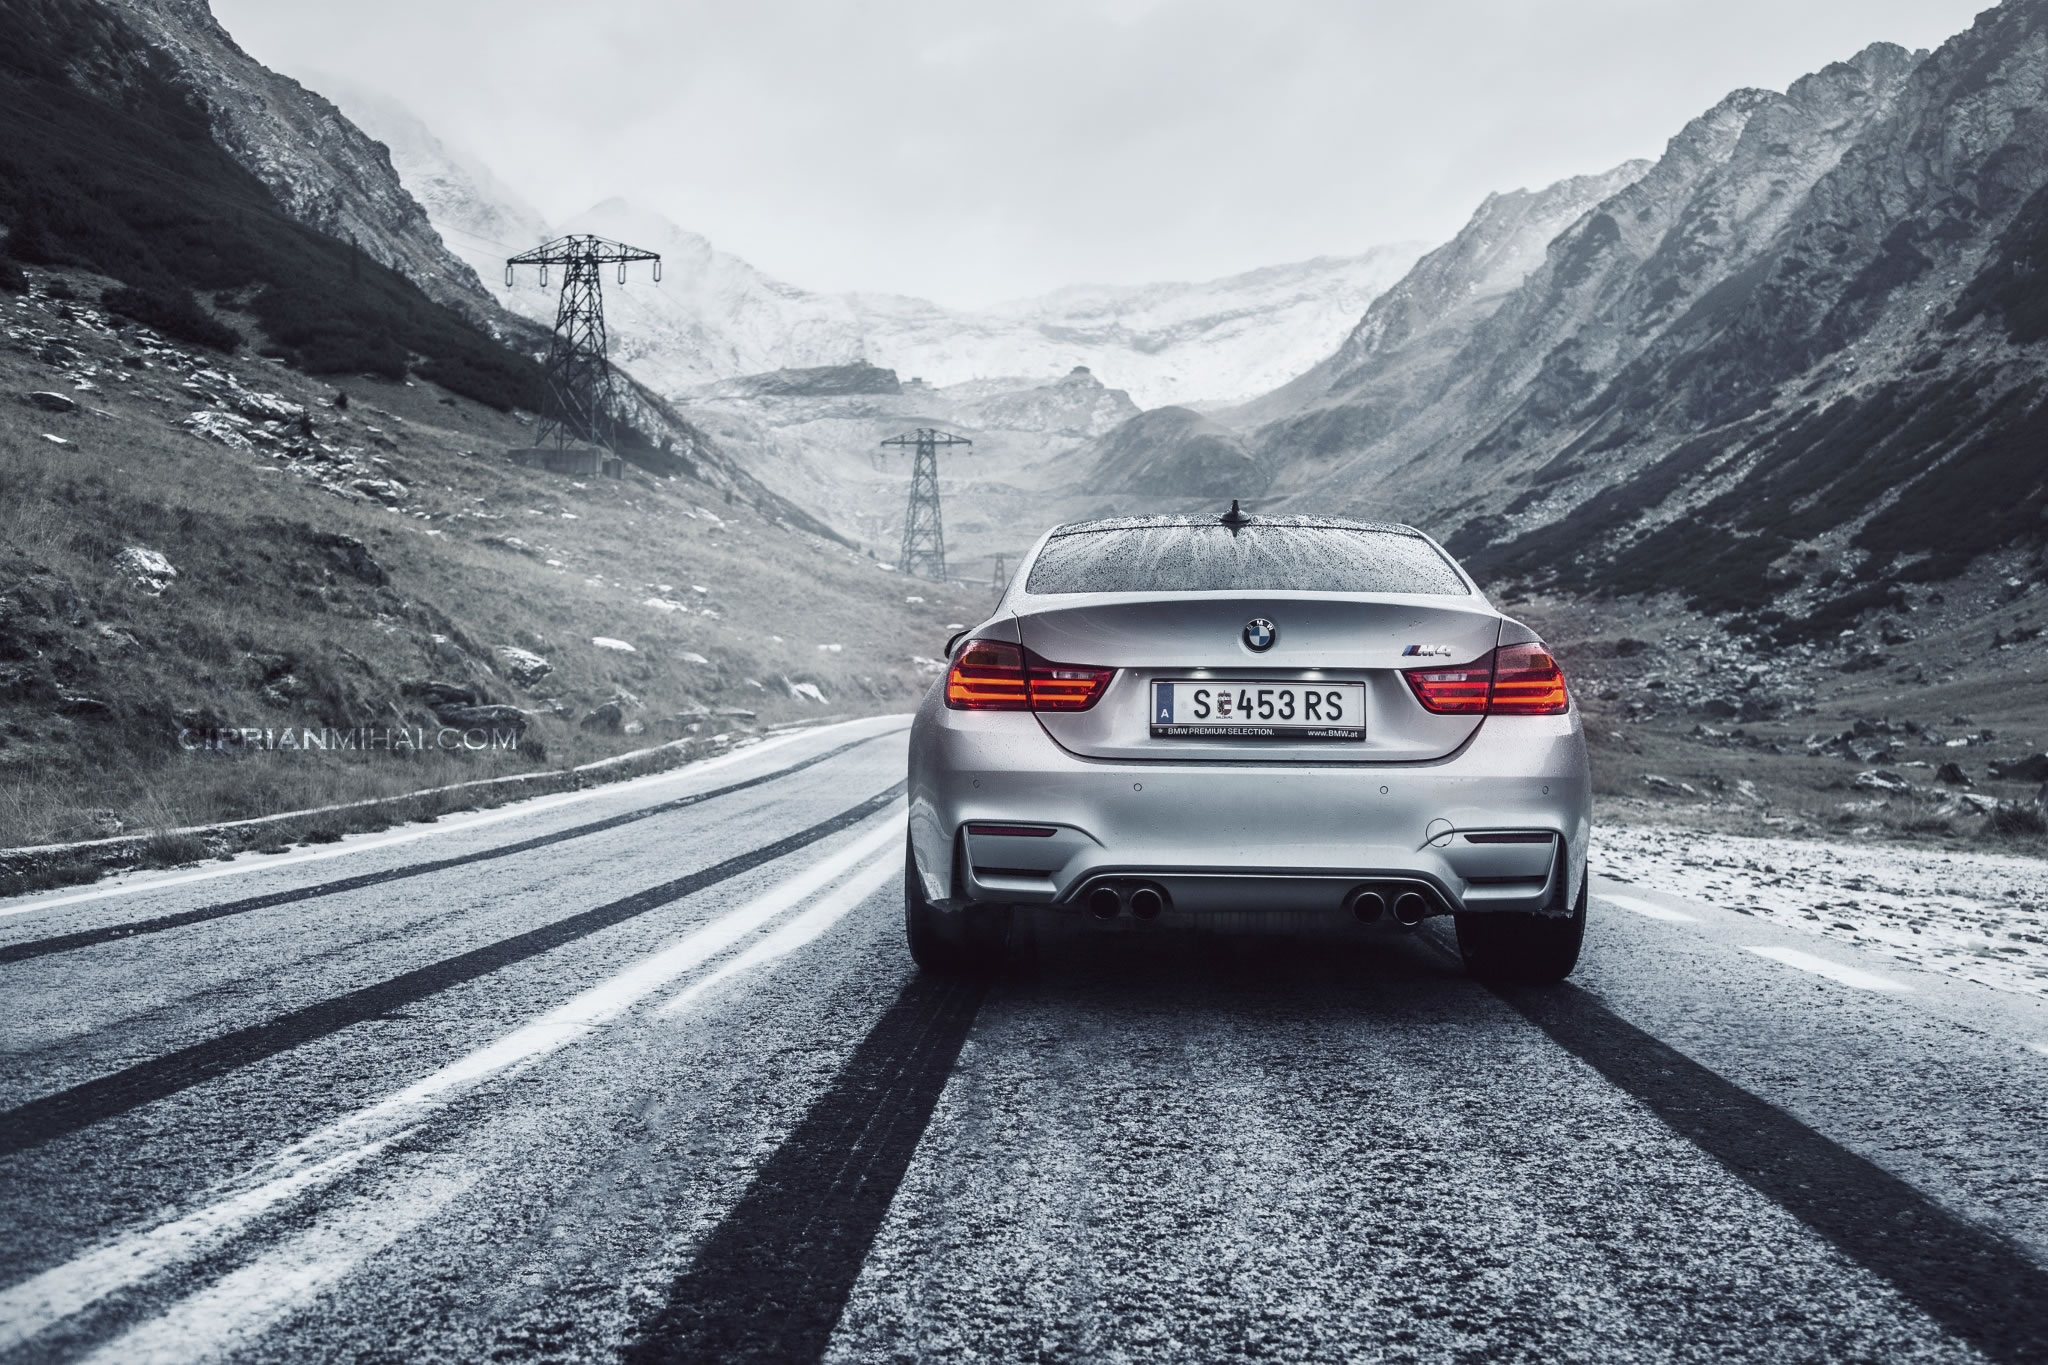 2015 BMW M4 Coupe Silver Paint Snow Tracks Mountains